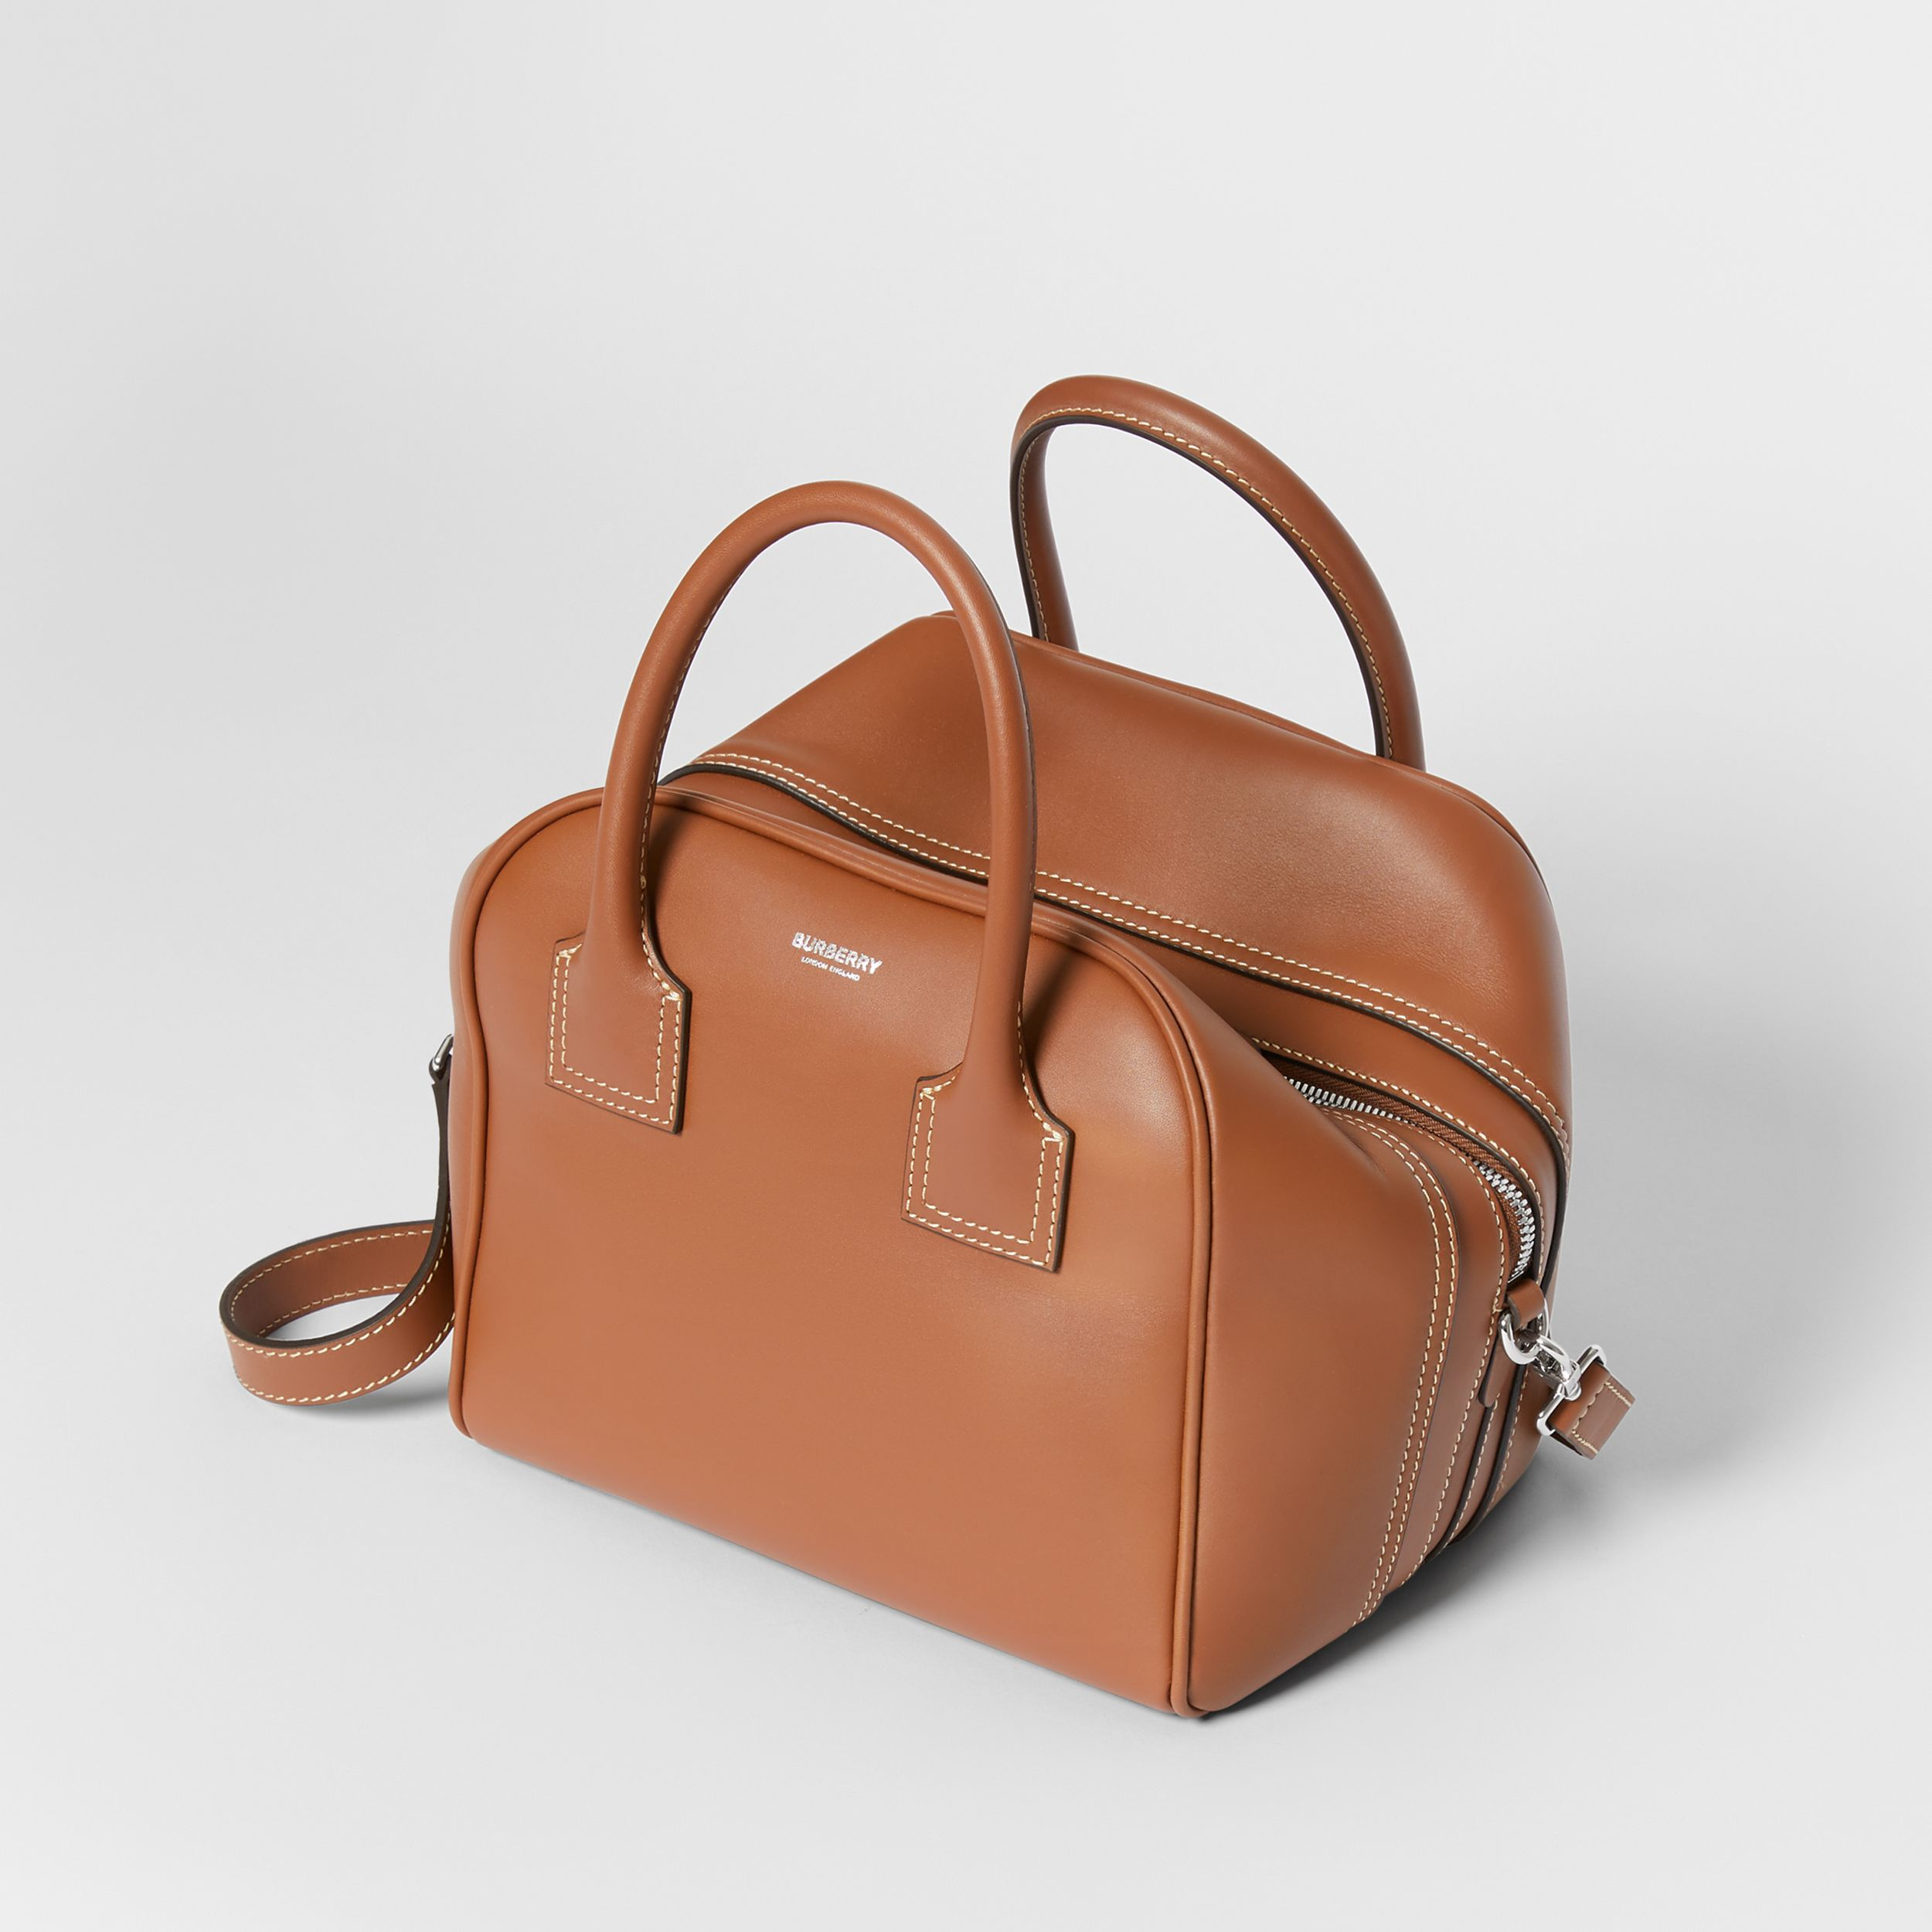 Small Leather Cube Bag in Malt Brown - Women | Burberry Canada - 4